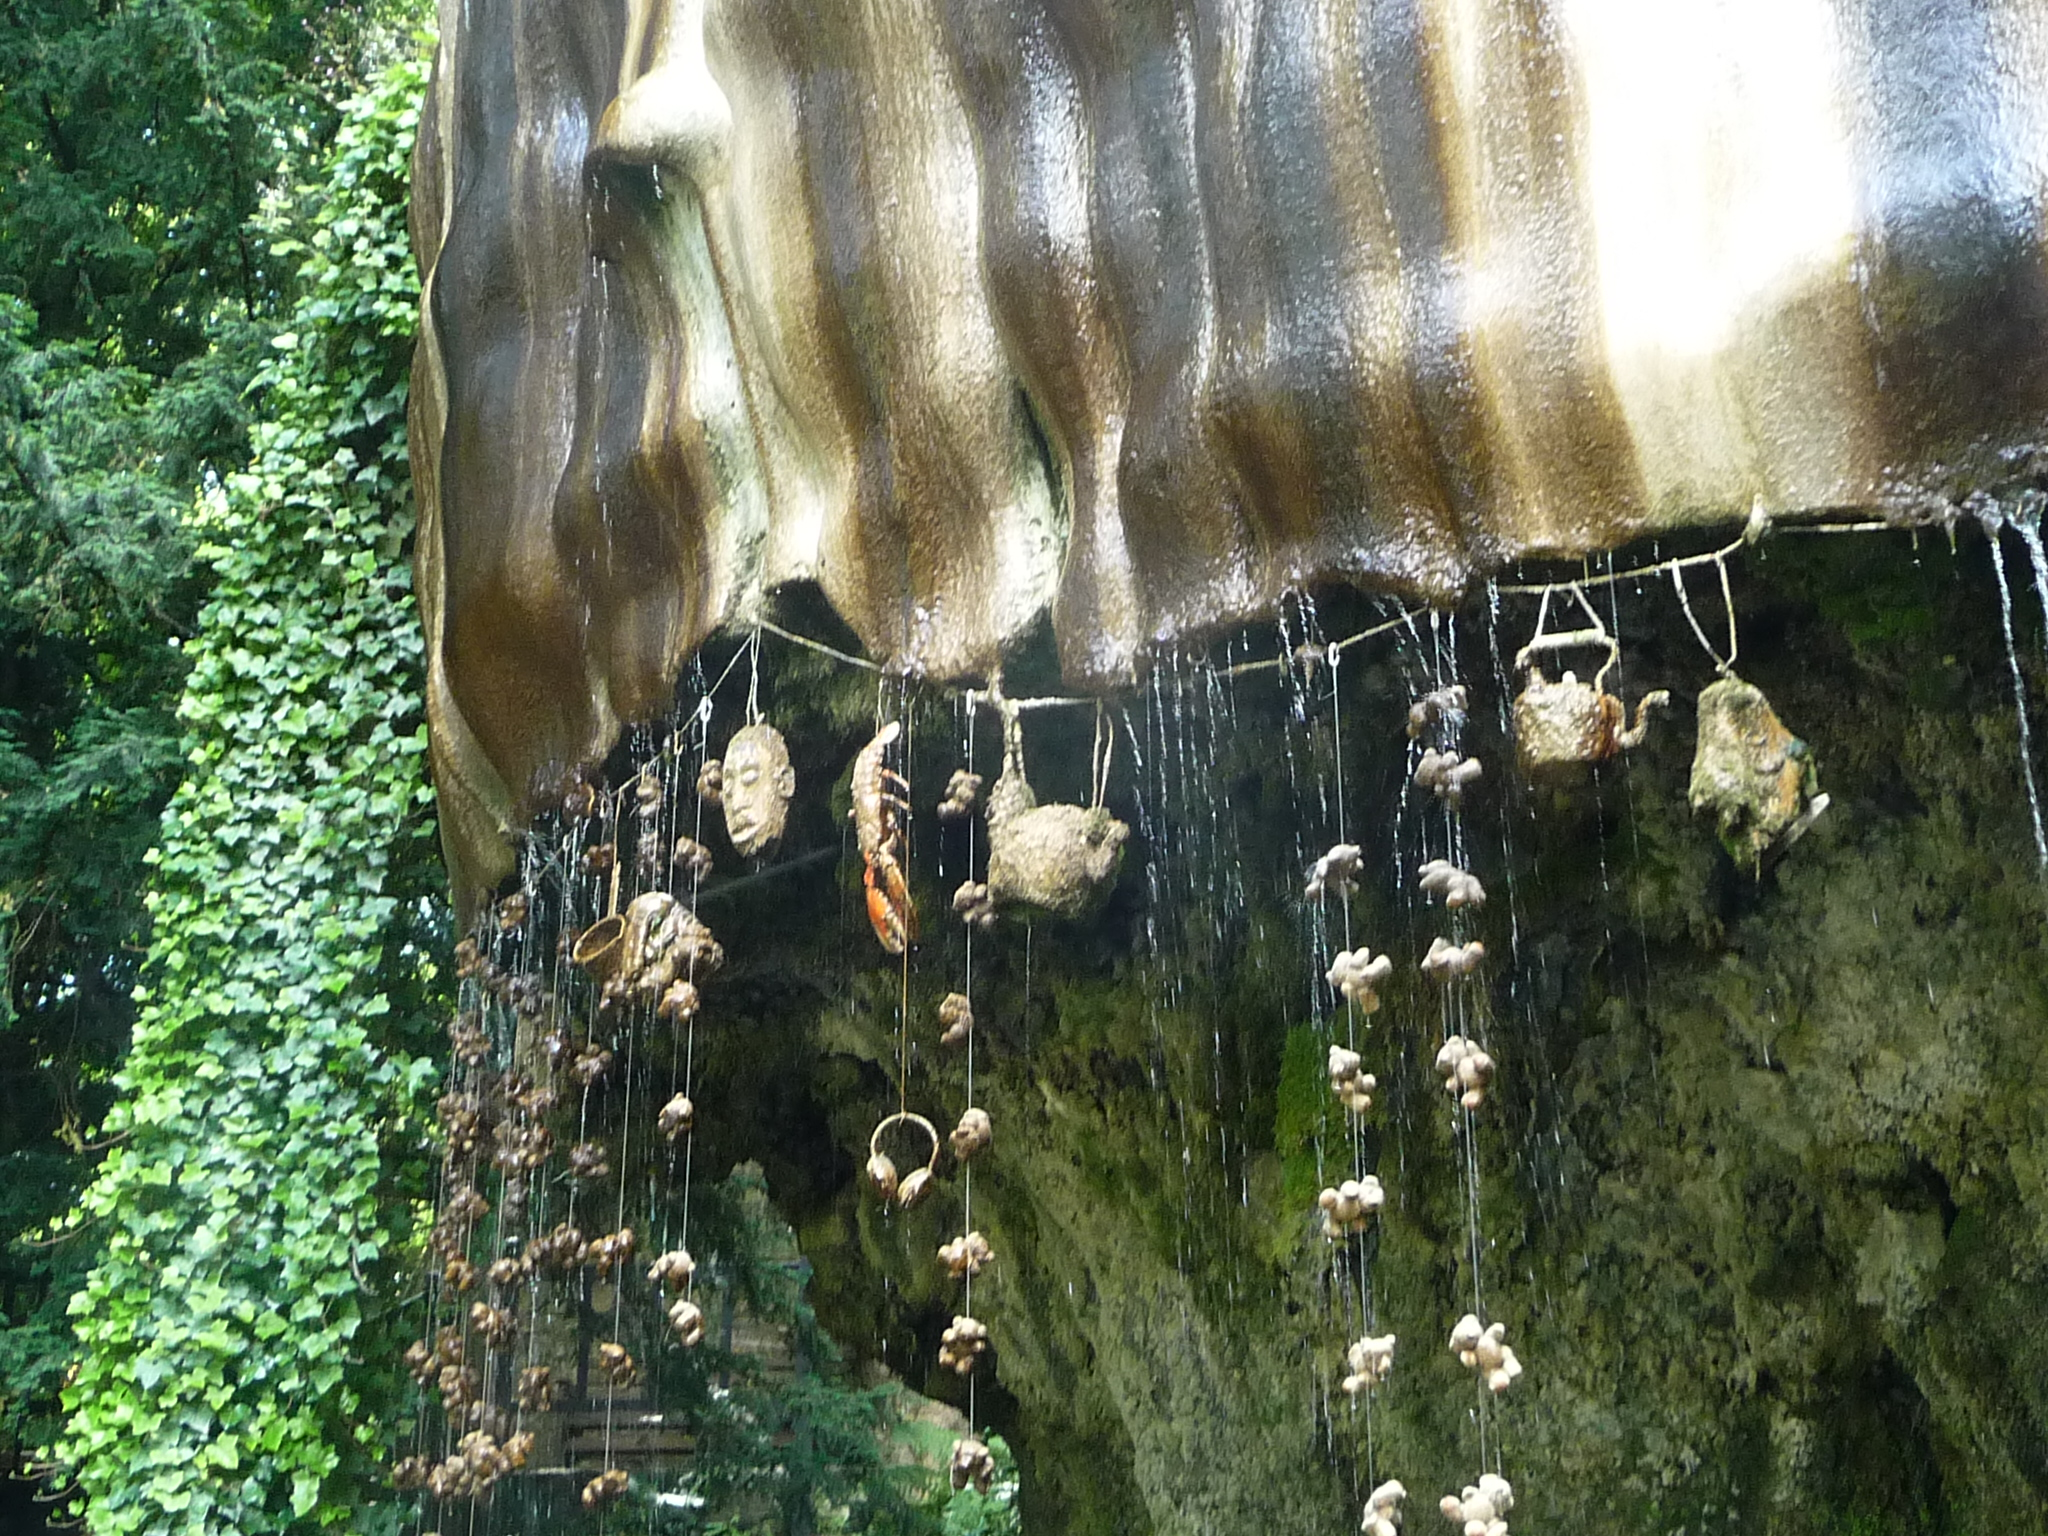 Young earth fossils under a waterfall